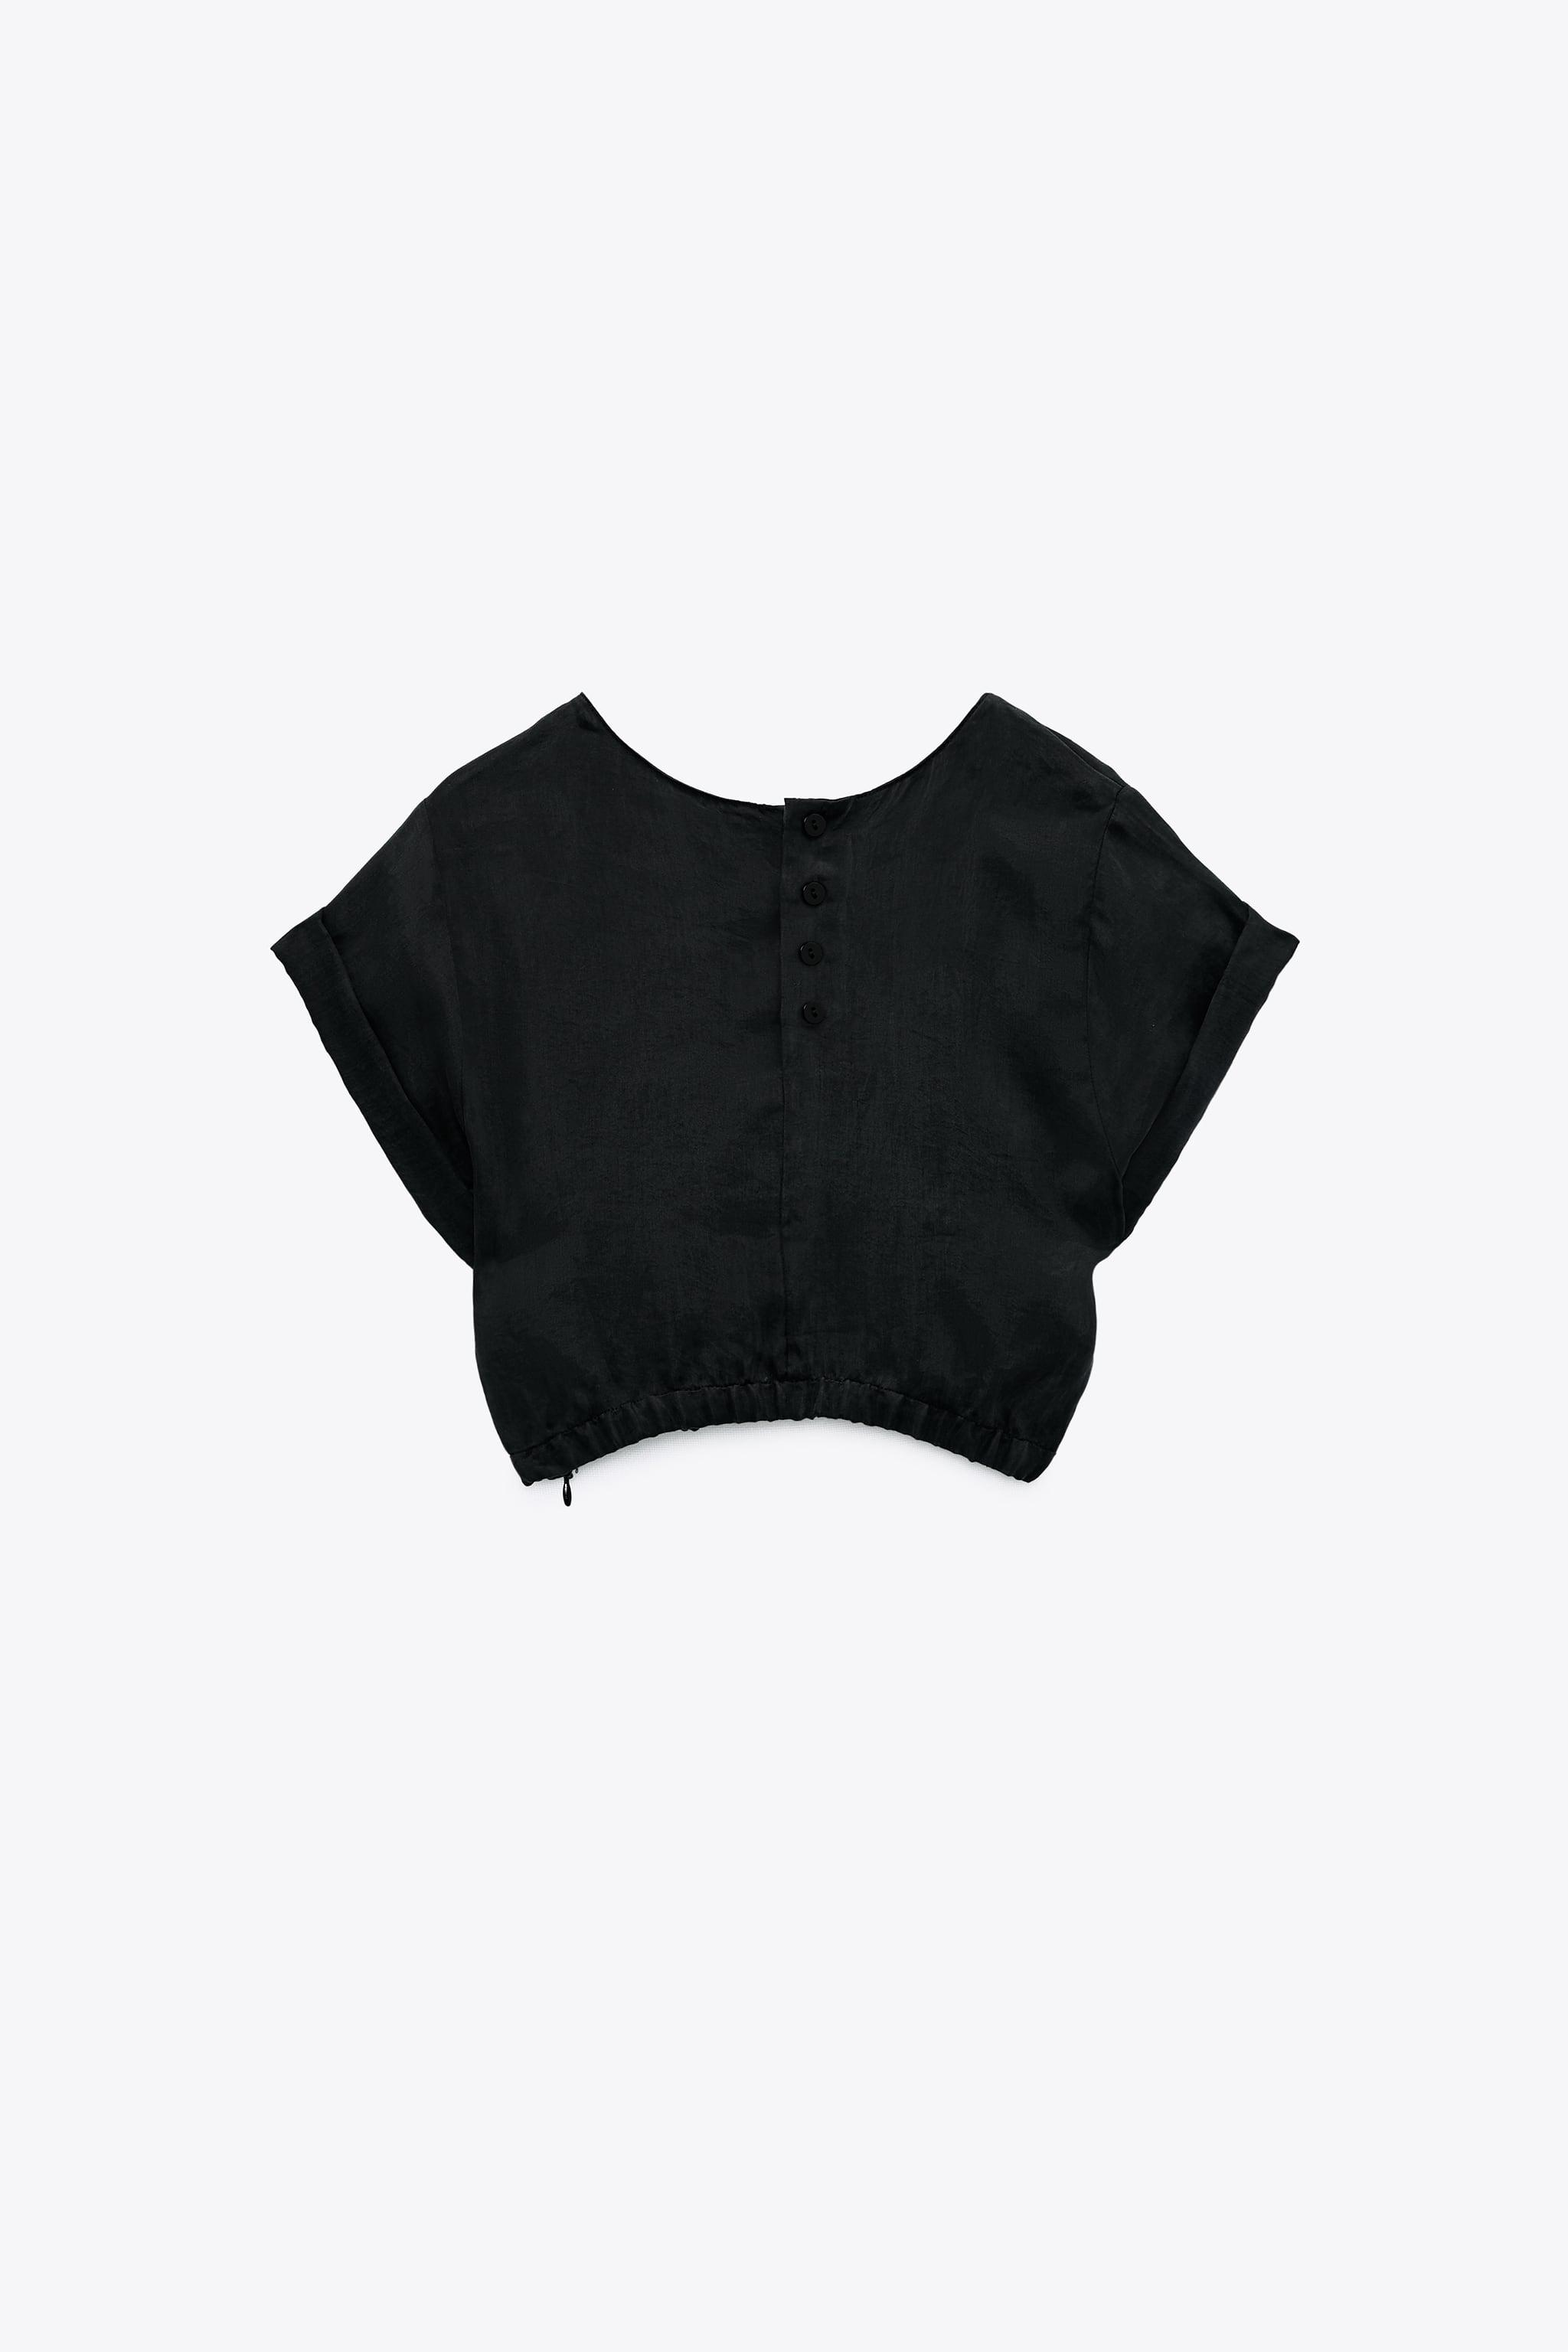 FLOWY CROPPED TOP 4